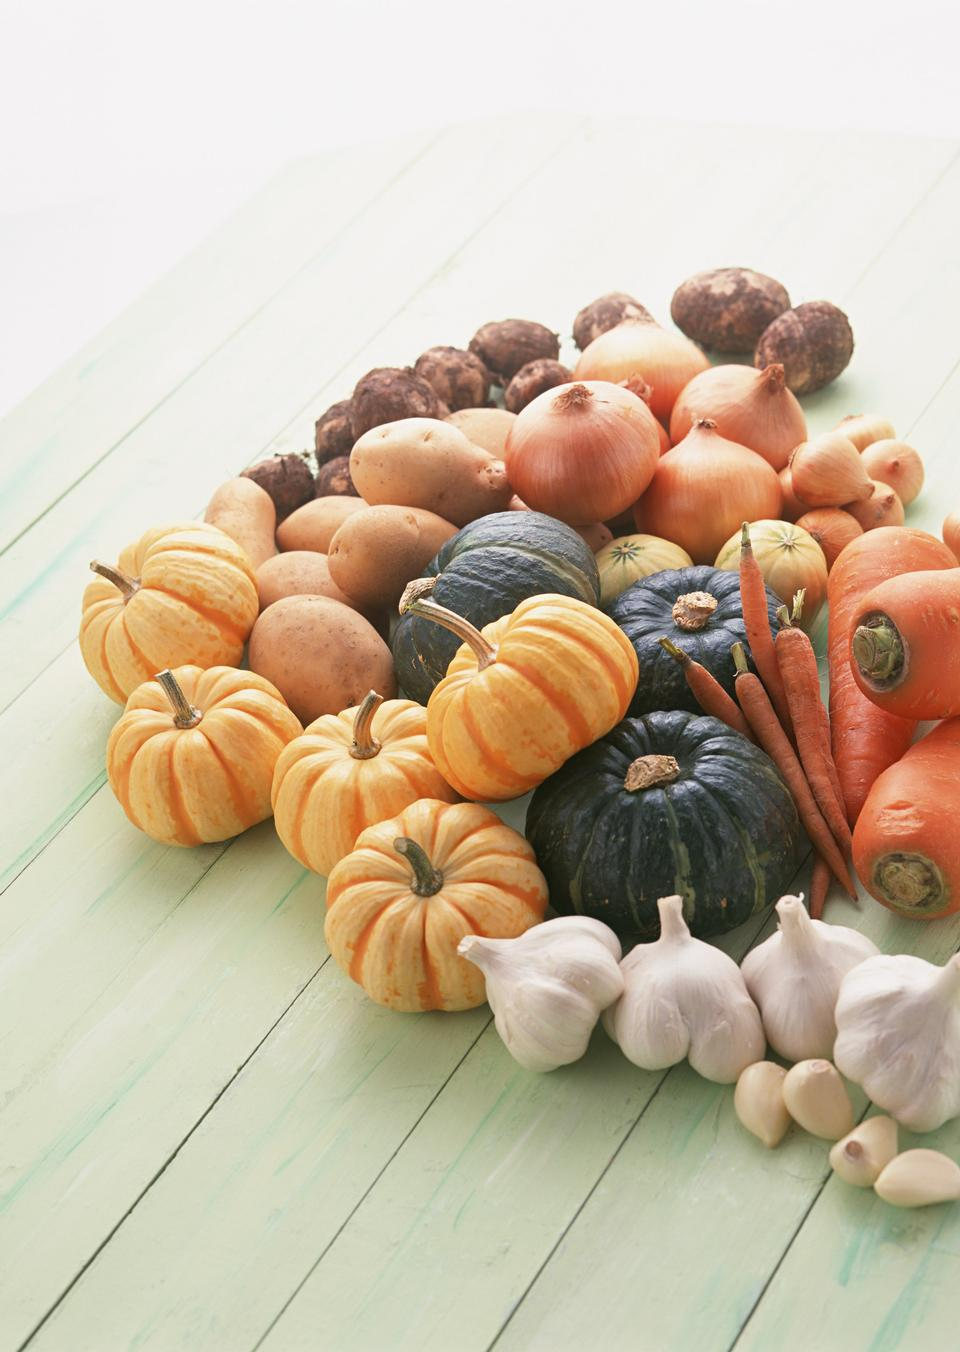 Top view of squash and pumpkins on wooden floor